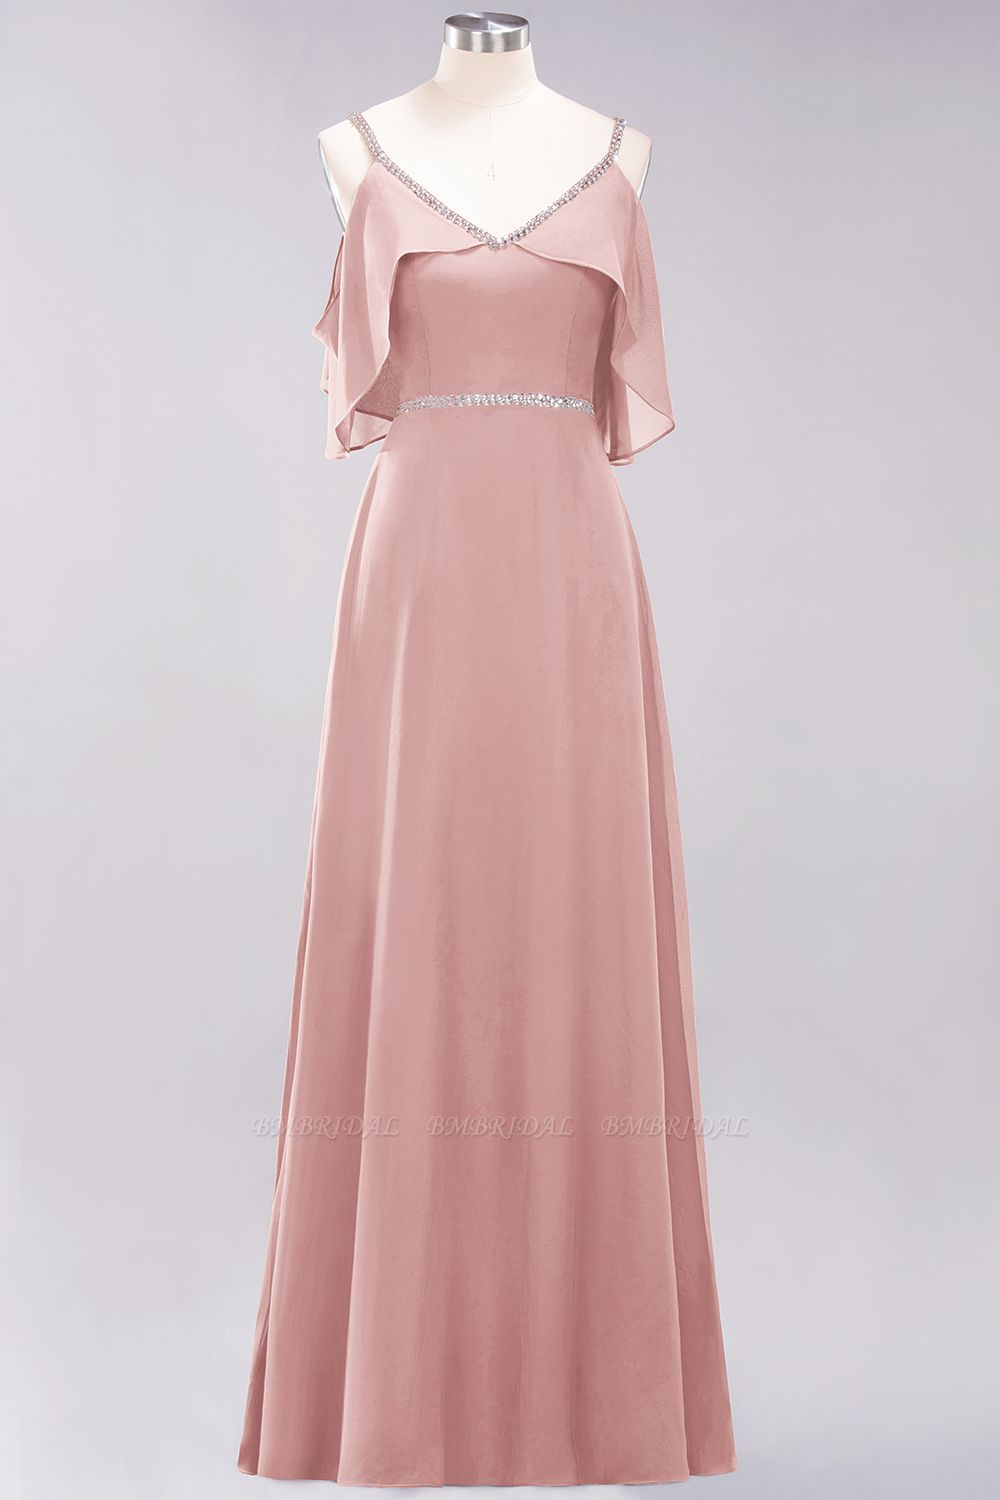 https://www.bmbridal.com/bridesmaids-c4/Dusty-Pink-f158?utm_source=blog&utm_medium=marialuisascerbo&utm_campaign=post&source=marialuisascerbo